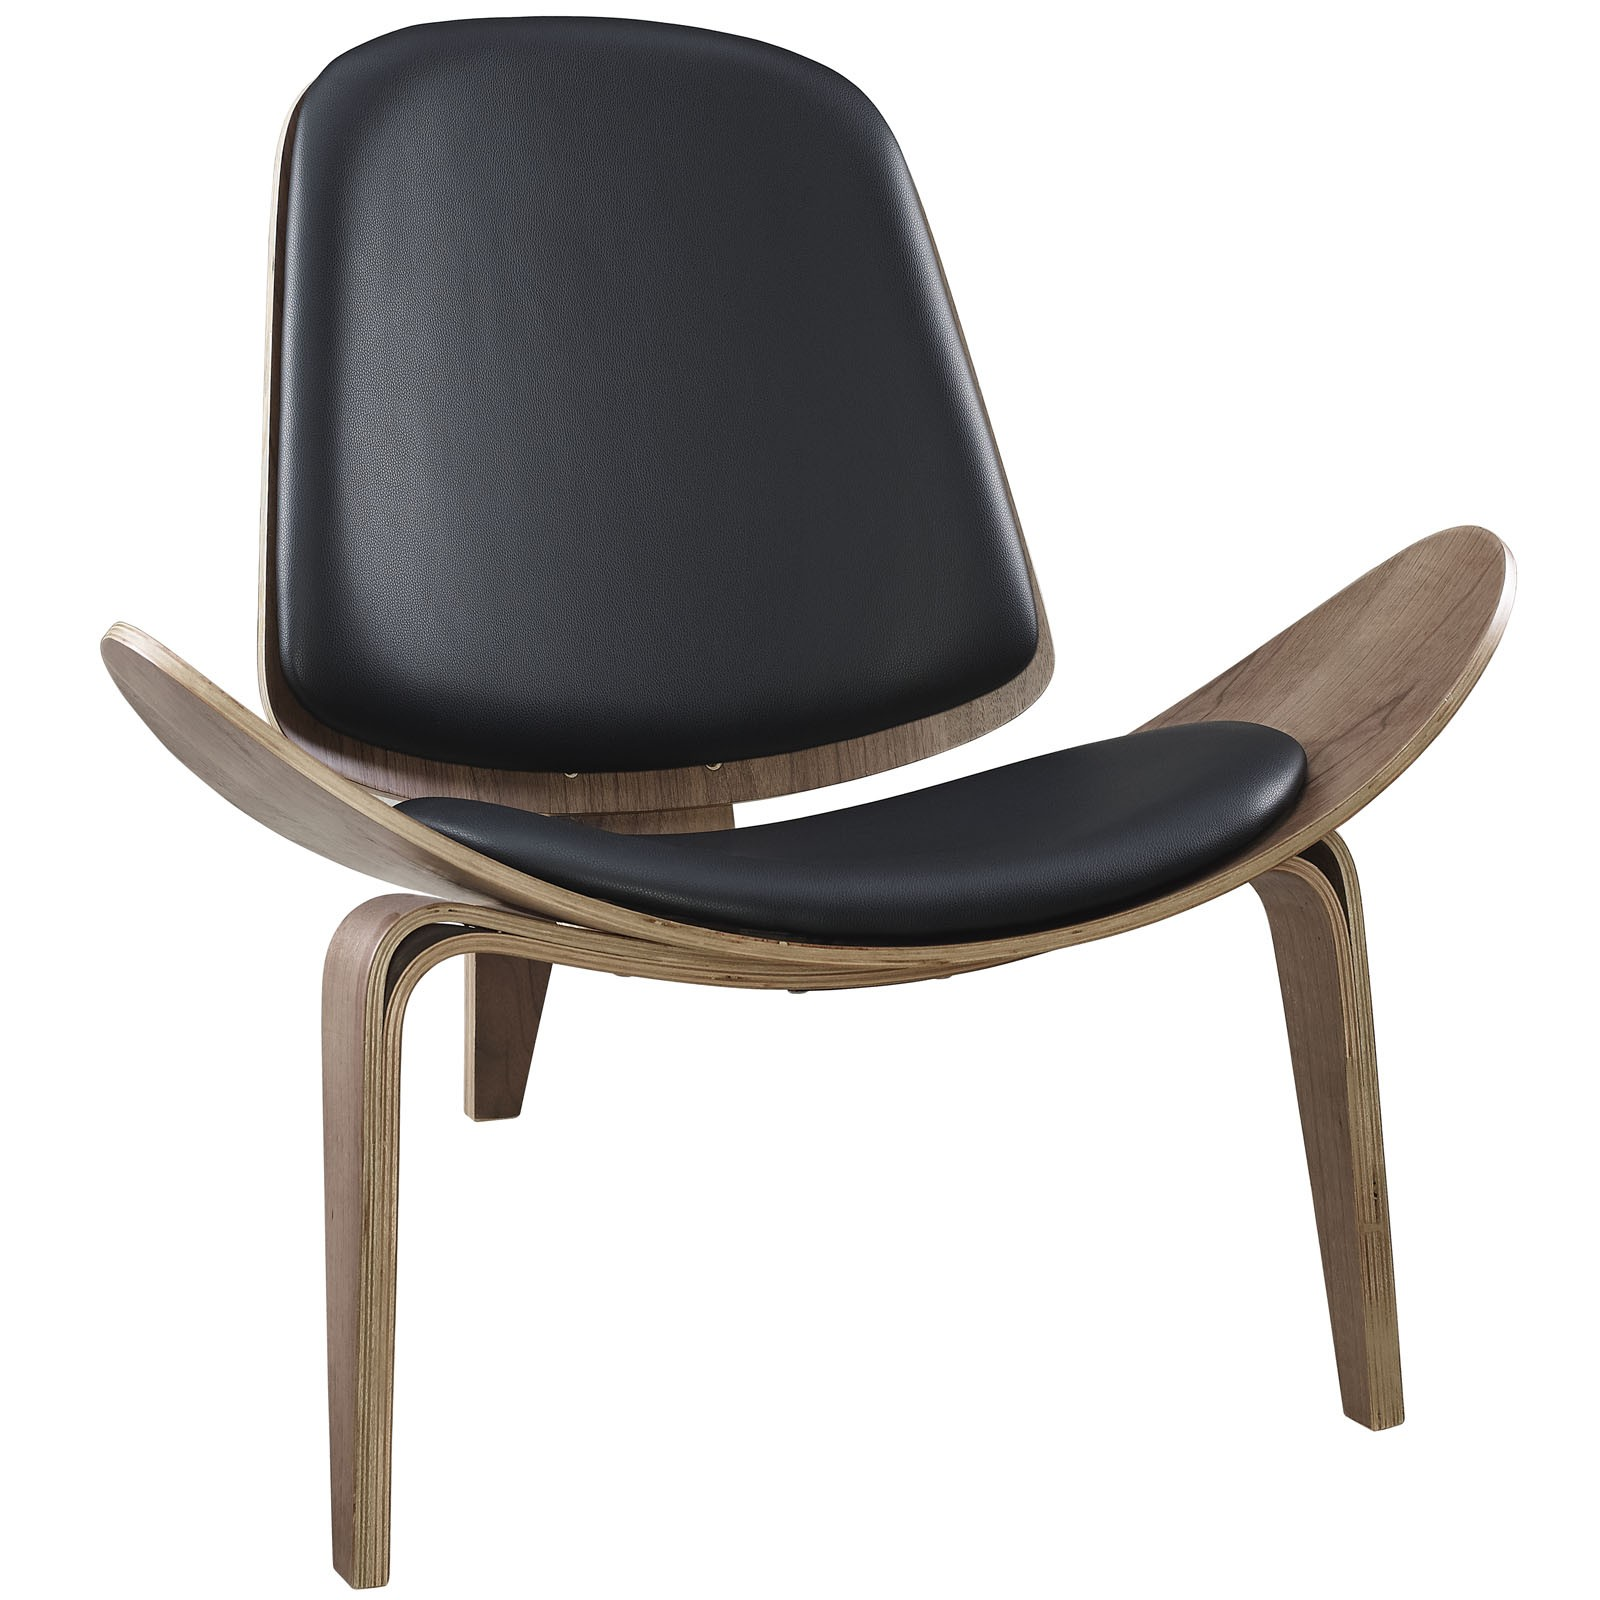 Arch Vinyl Lounge Chair-Walnut Black